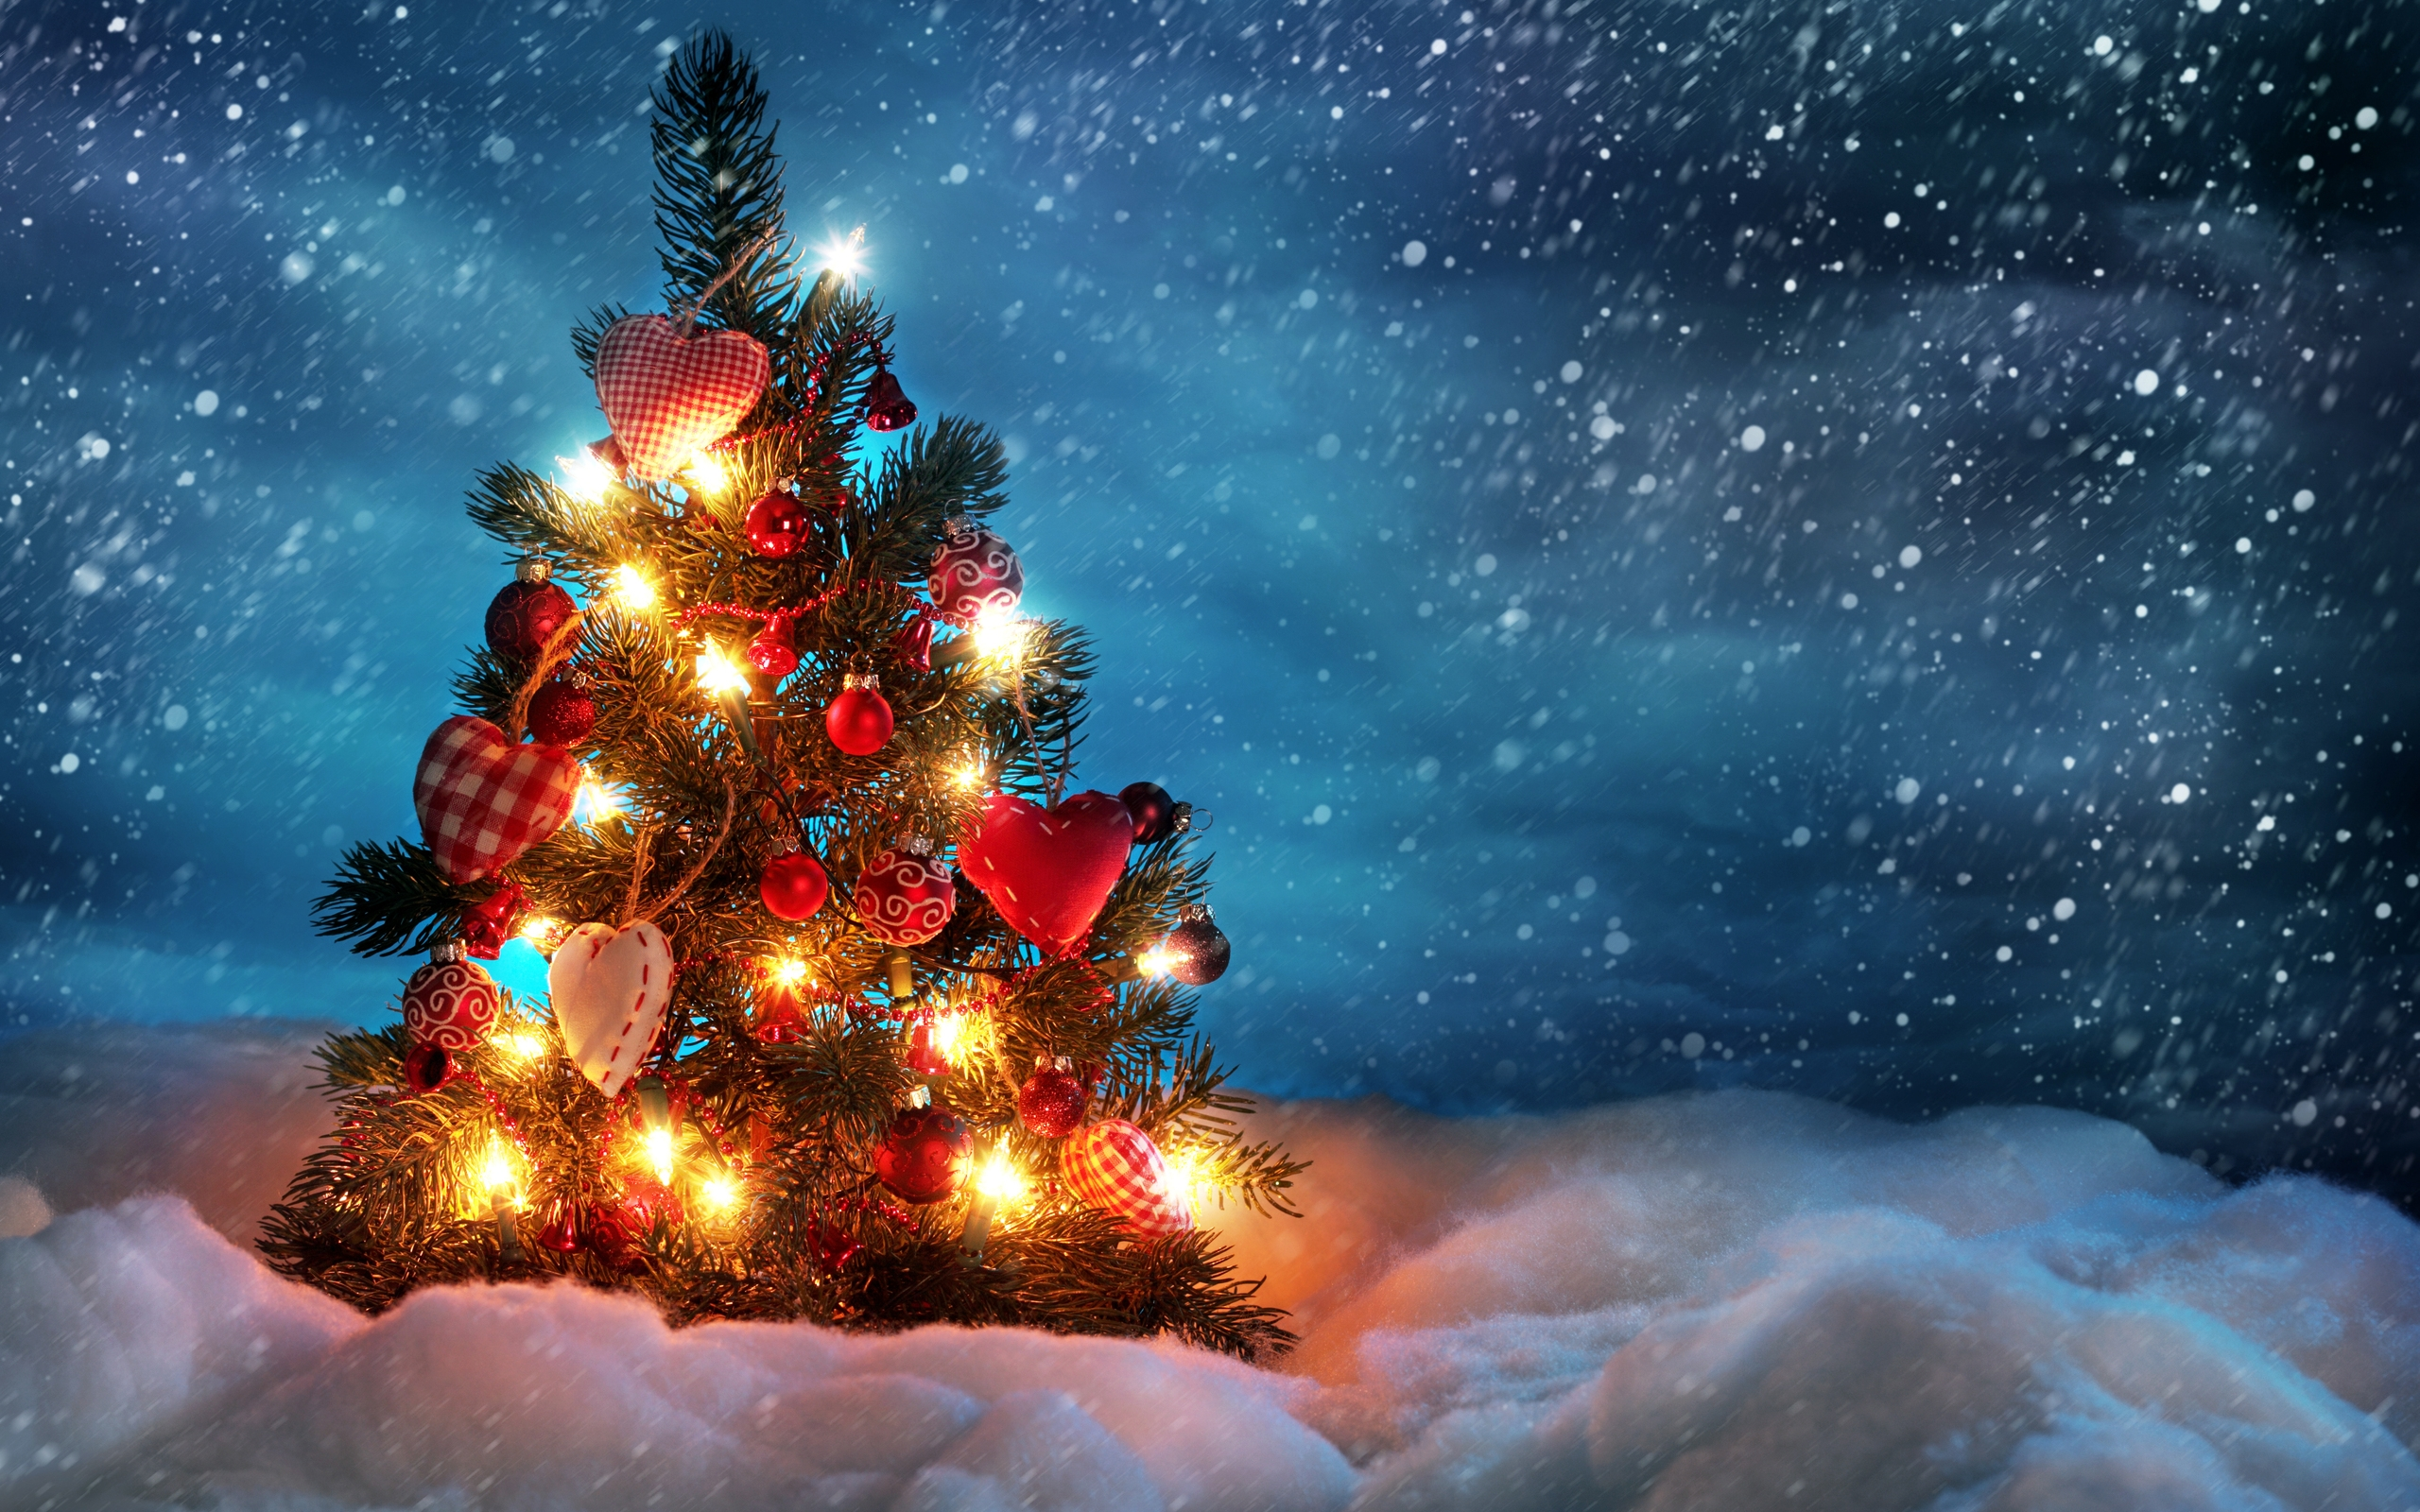 Essential Christmas Desktop Wallpapers for 2013 2560x1600